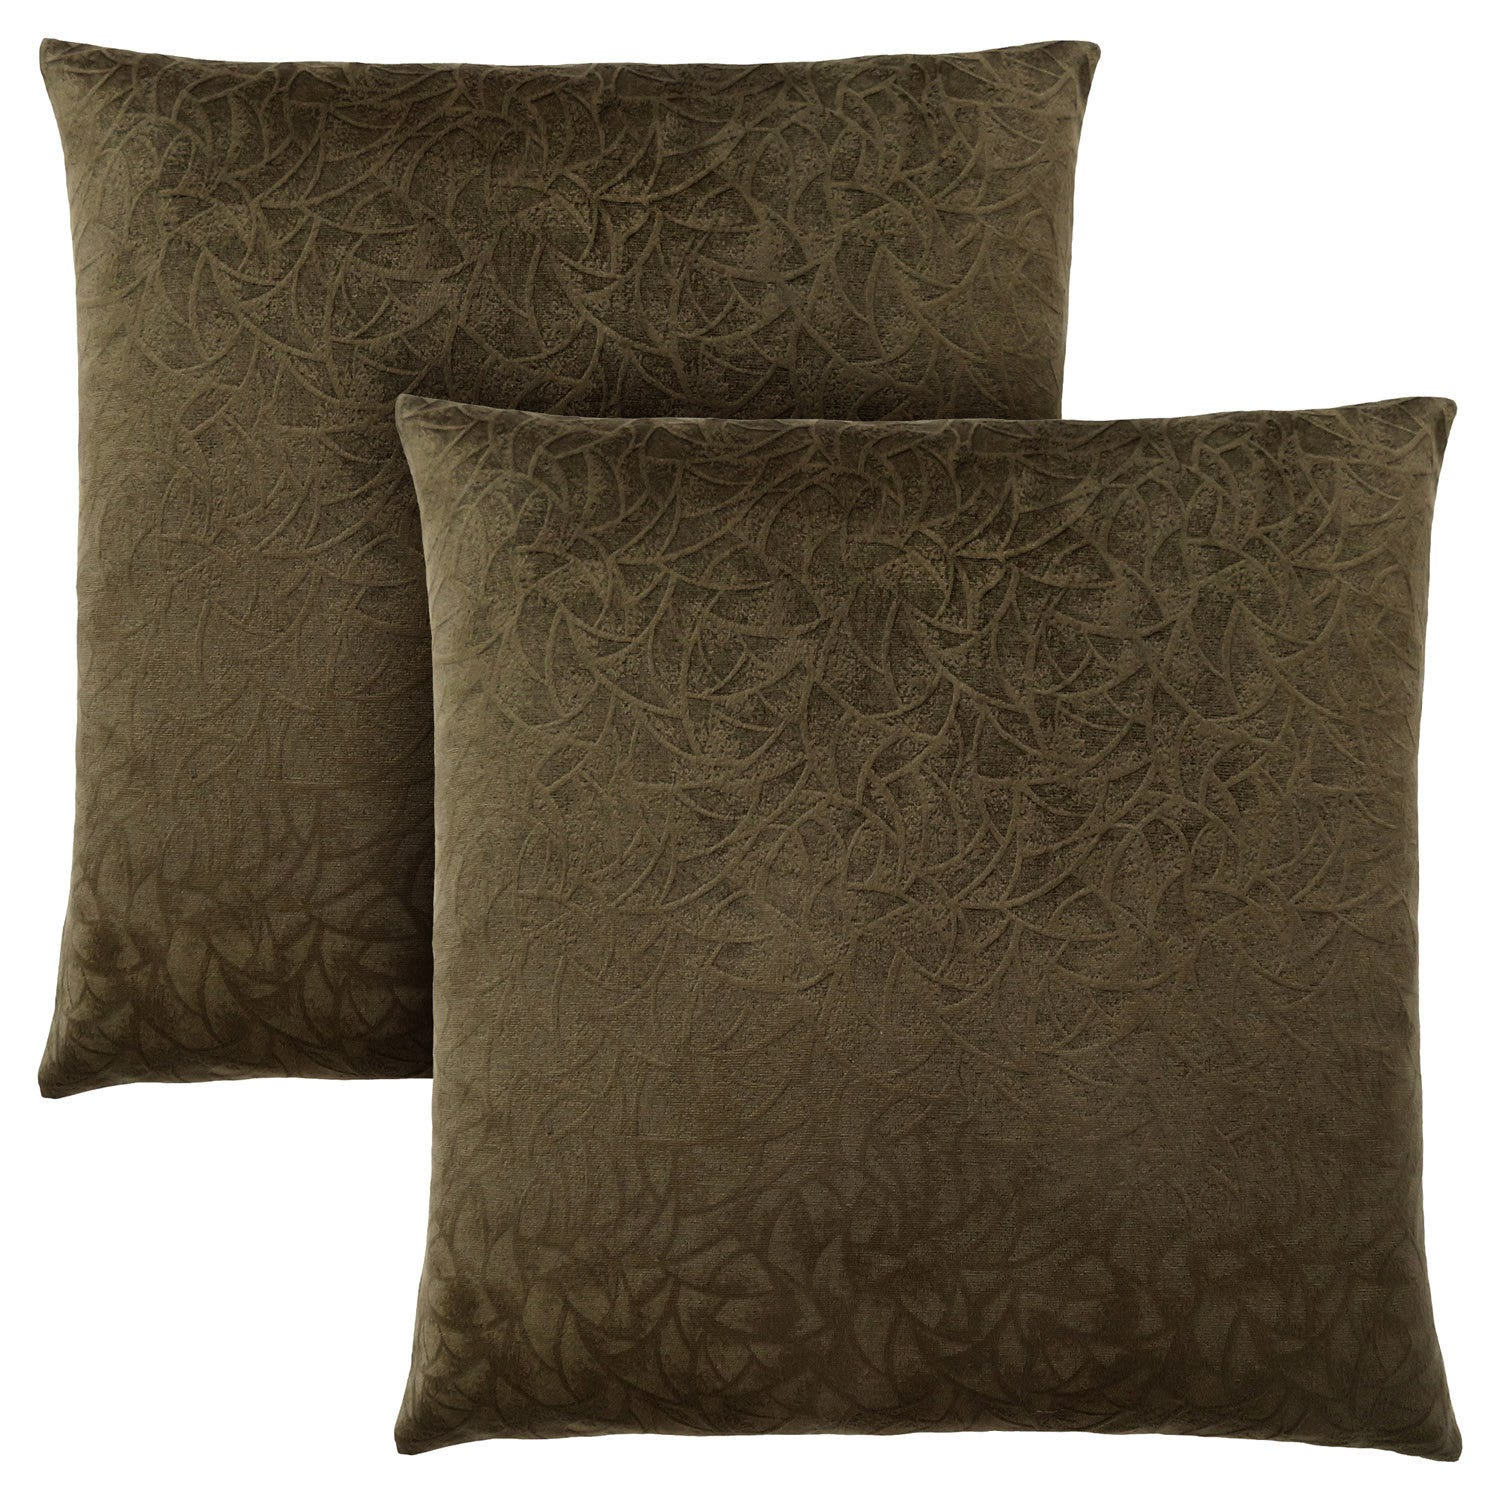 Pillow 18 X 18 Dark Green Floral Velvet 2pcs